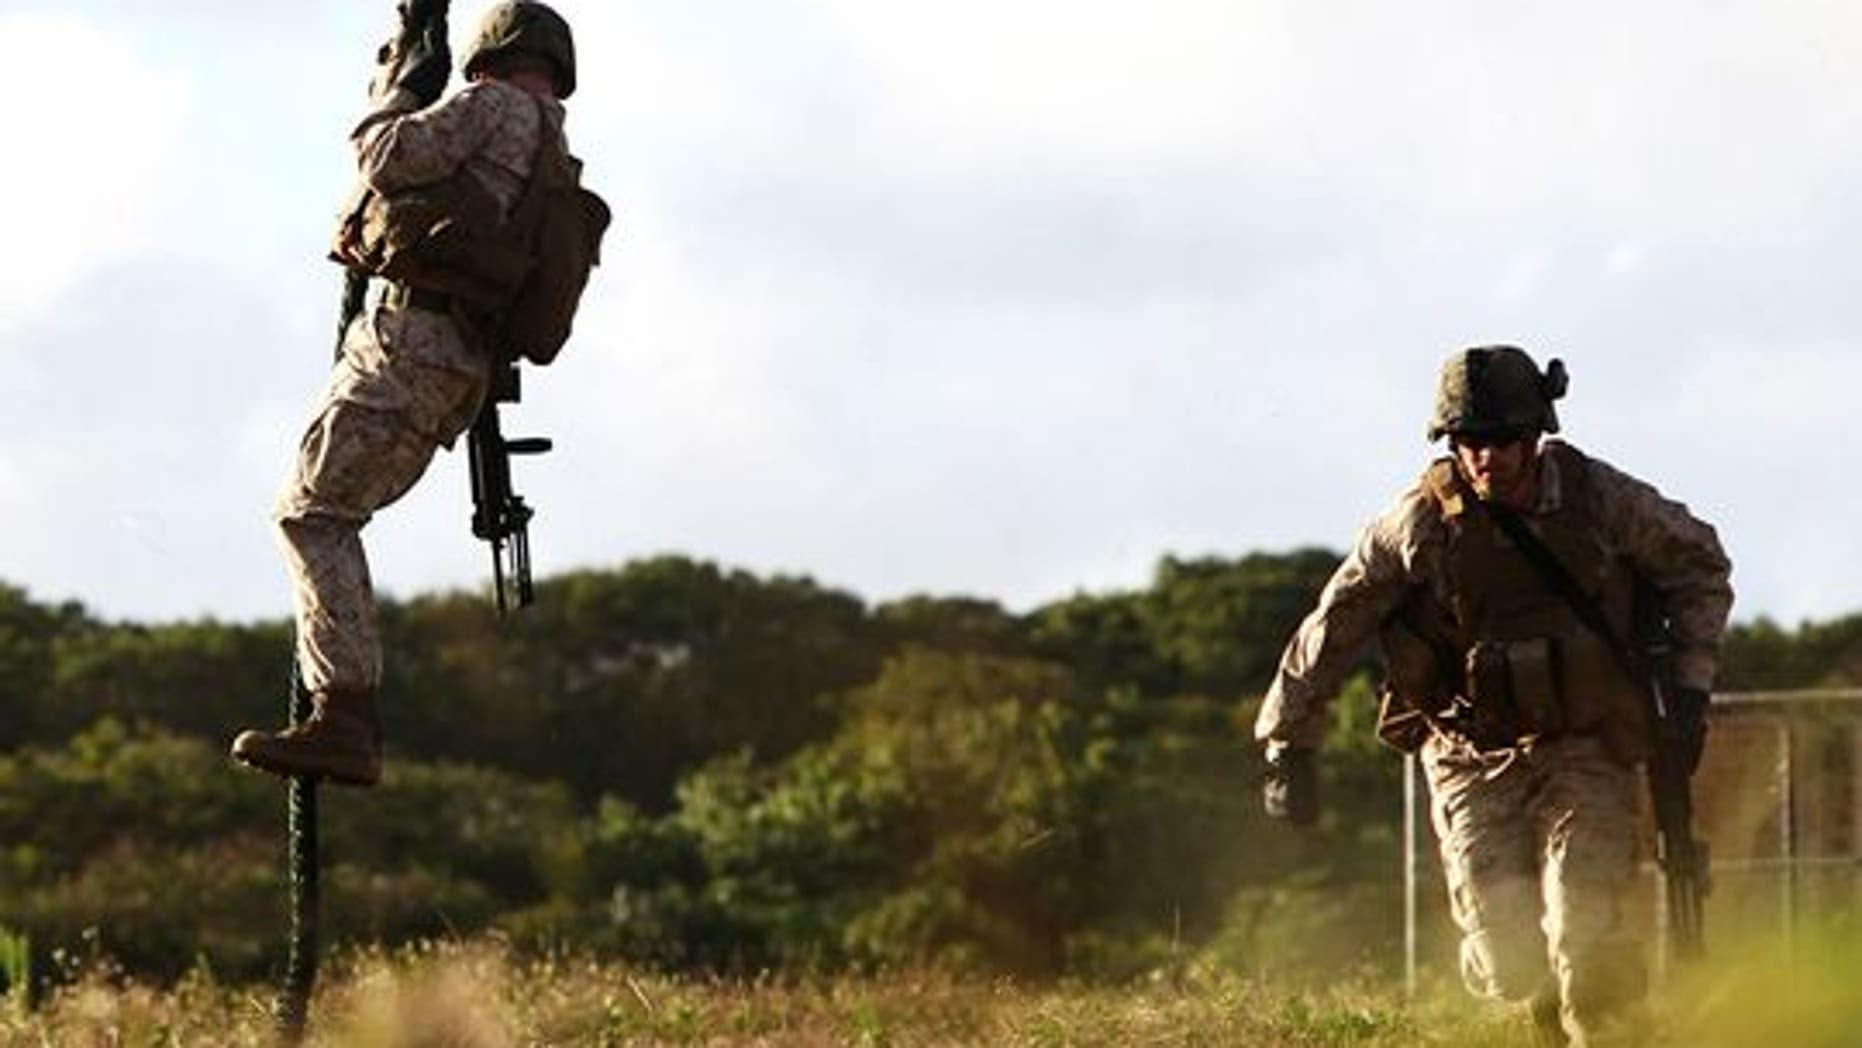 Marines fast-rope out of a helicopter during a training exercise in Guam. (Credit: Lance Cpl. Jenkins/Marine Corps)